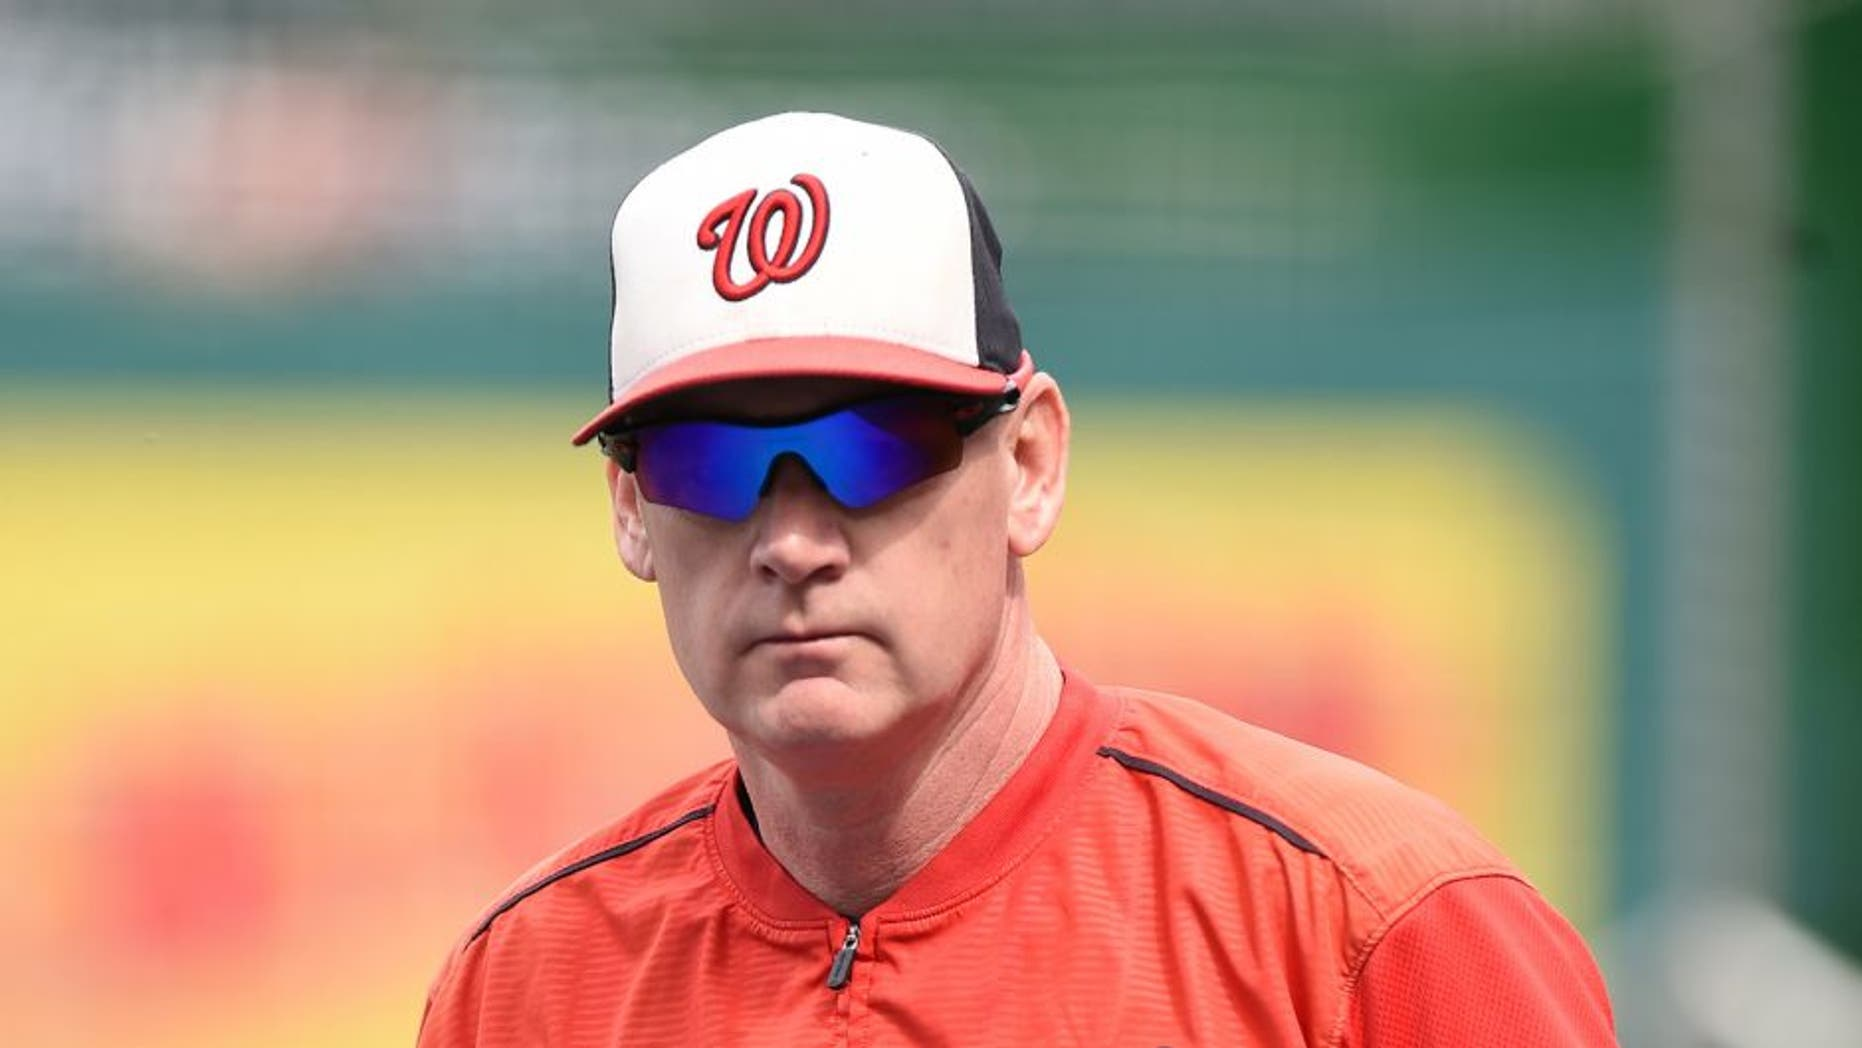 WASHINGTON, DC - SEPTEMBER 24: Manager Matt Williams #9 of the Washington Nationals looks on before a baseball game against the Baltimore Orioles at Nationals Park on September 24, 2015 in Washington, DC. (Photo by Mitchell Layton/Getty Images)